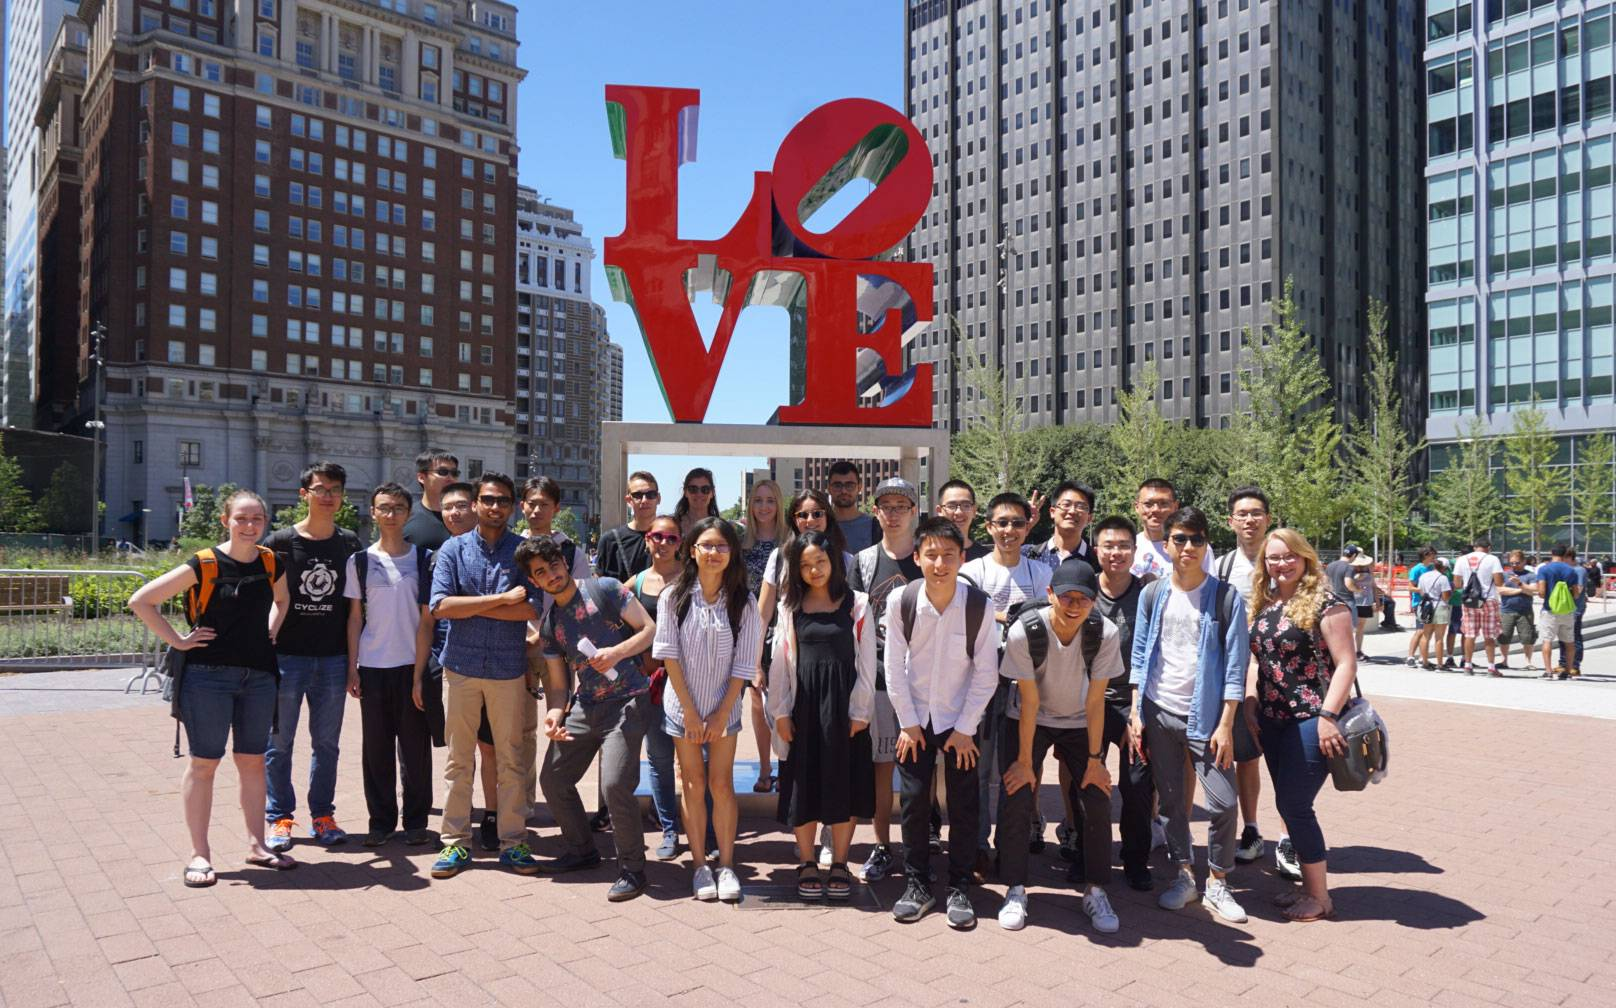 International students standing in front of LOVE statue in Philadelphia